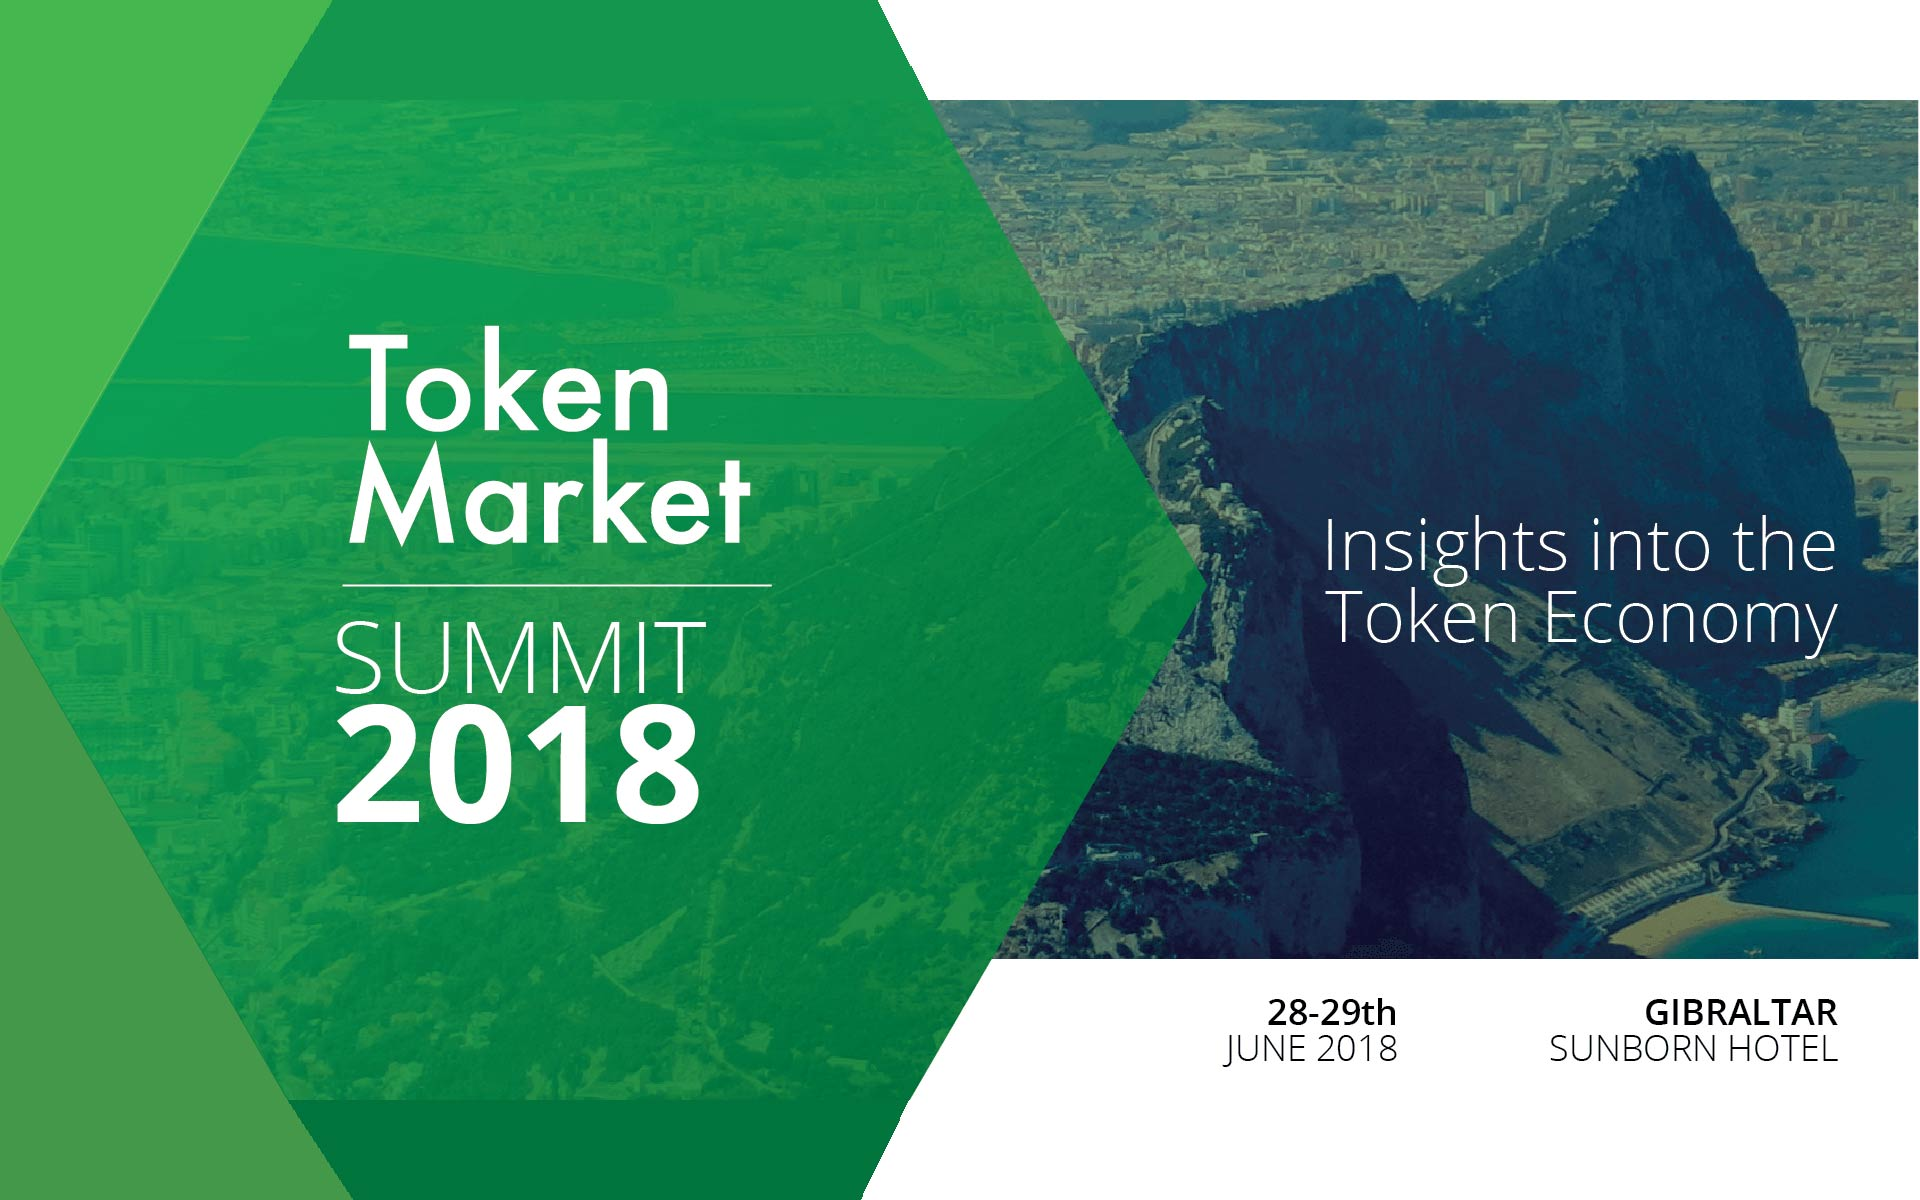 The Government of Gibraltar and Its Most Prominent Law Firms To Feature At TokenMarket 2018 Summit